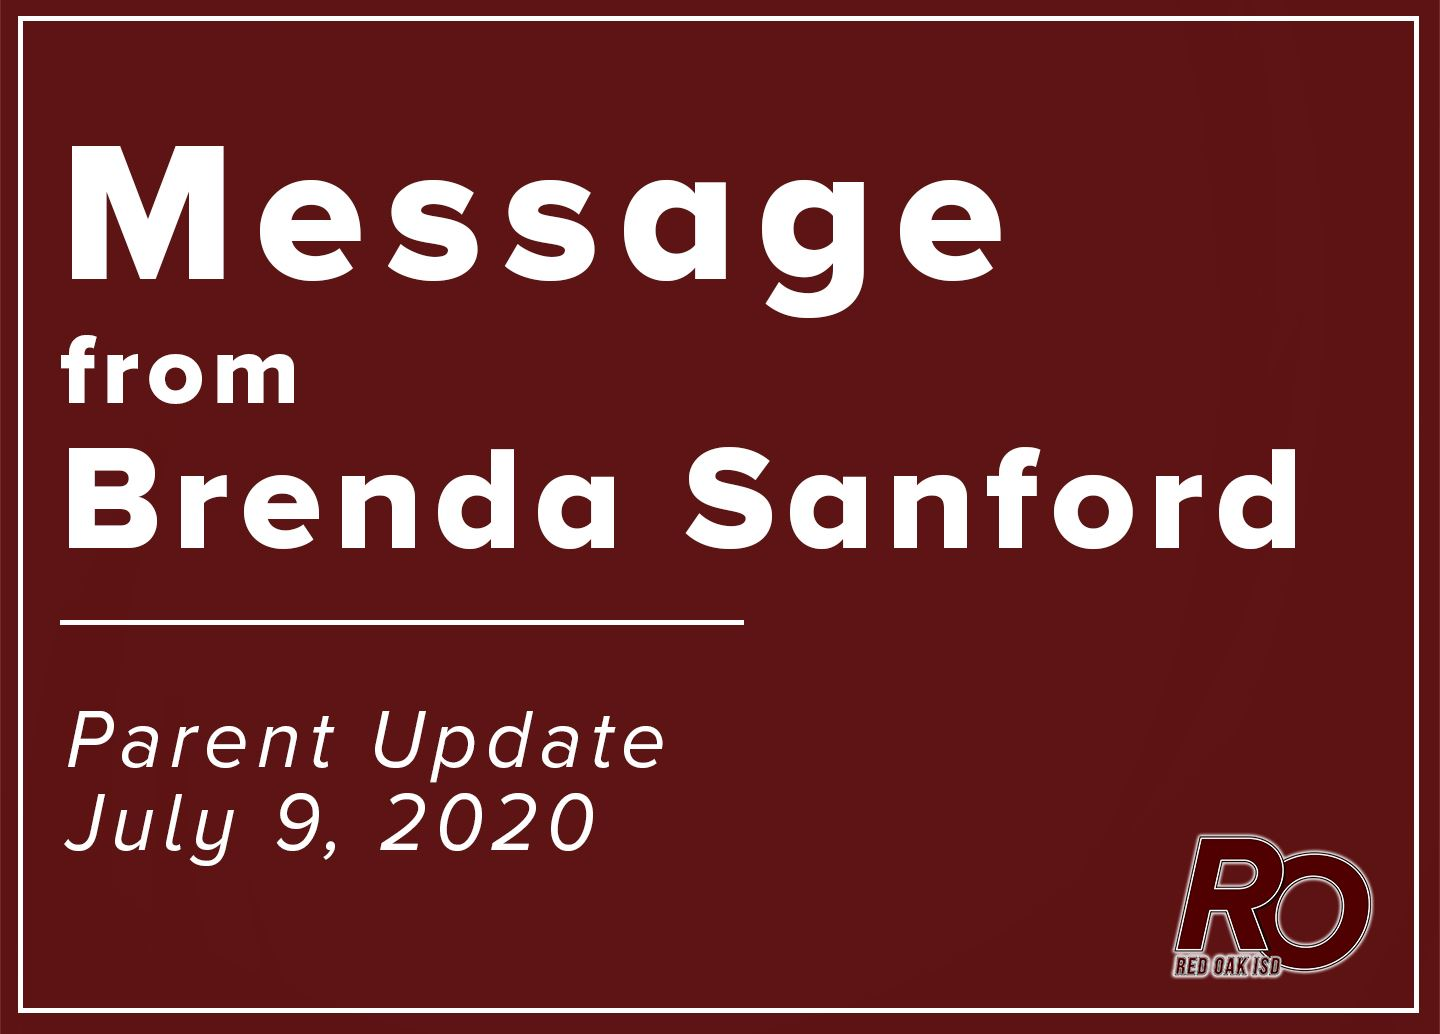 Message from Brenda Sanford: Parent update for July 9, 2020